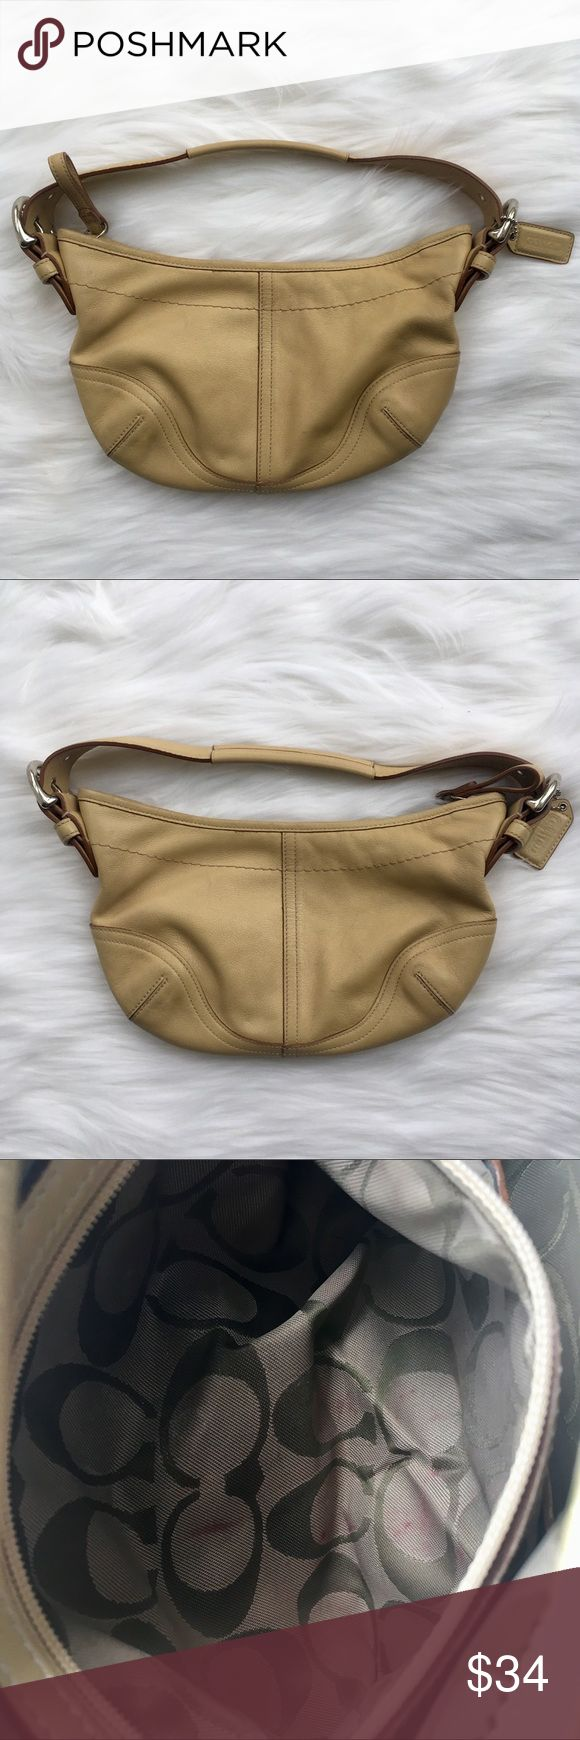 "Coach Hobo Bag Small | 9541 Beautiful Coach small Hobo Bag. #L3S 9541 Natural cowhide leather. Fabric optic pattern interior.  Zipped pocket interior. Great condition! Dimensions: Approx. 10"" W x 6"" L x 7.75"" strap drop Some signs of love including some marks (see pictures). We will consider offers!!  Please note: All sales are final, no returns or exchanges. Coach Bags Hobos"